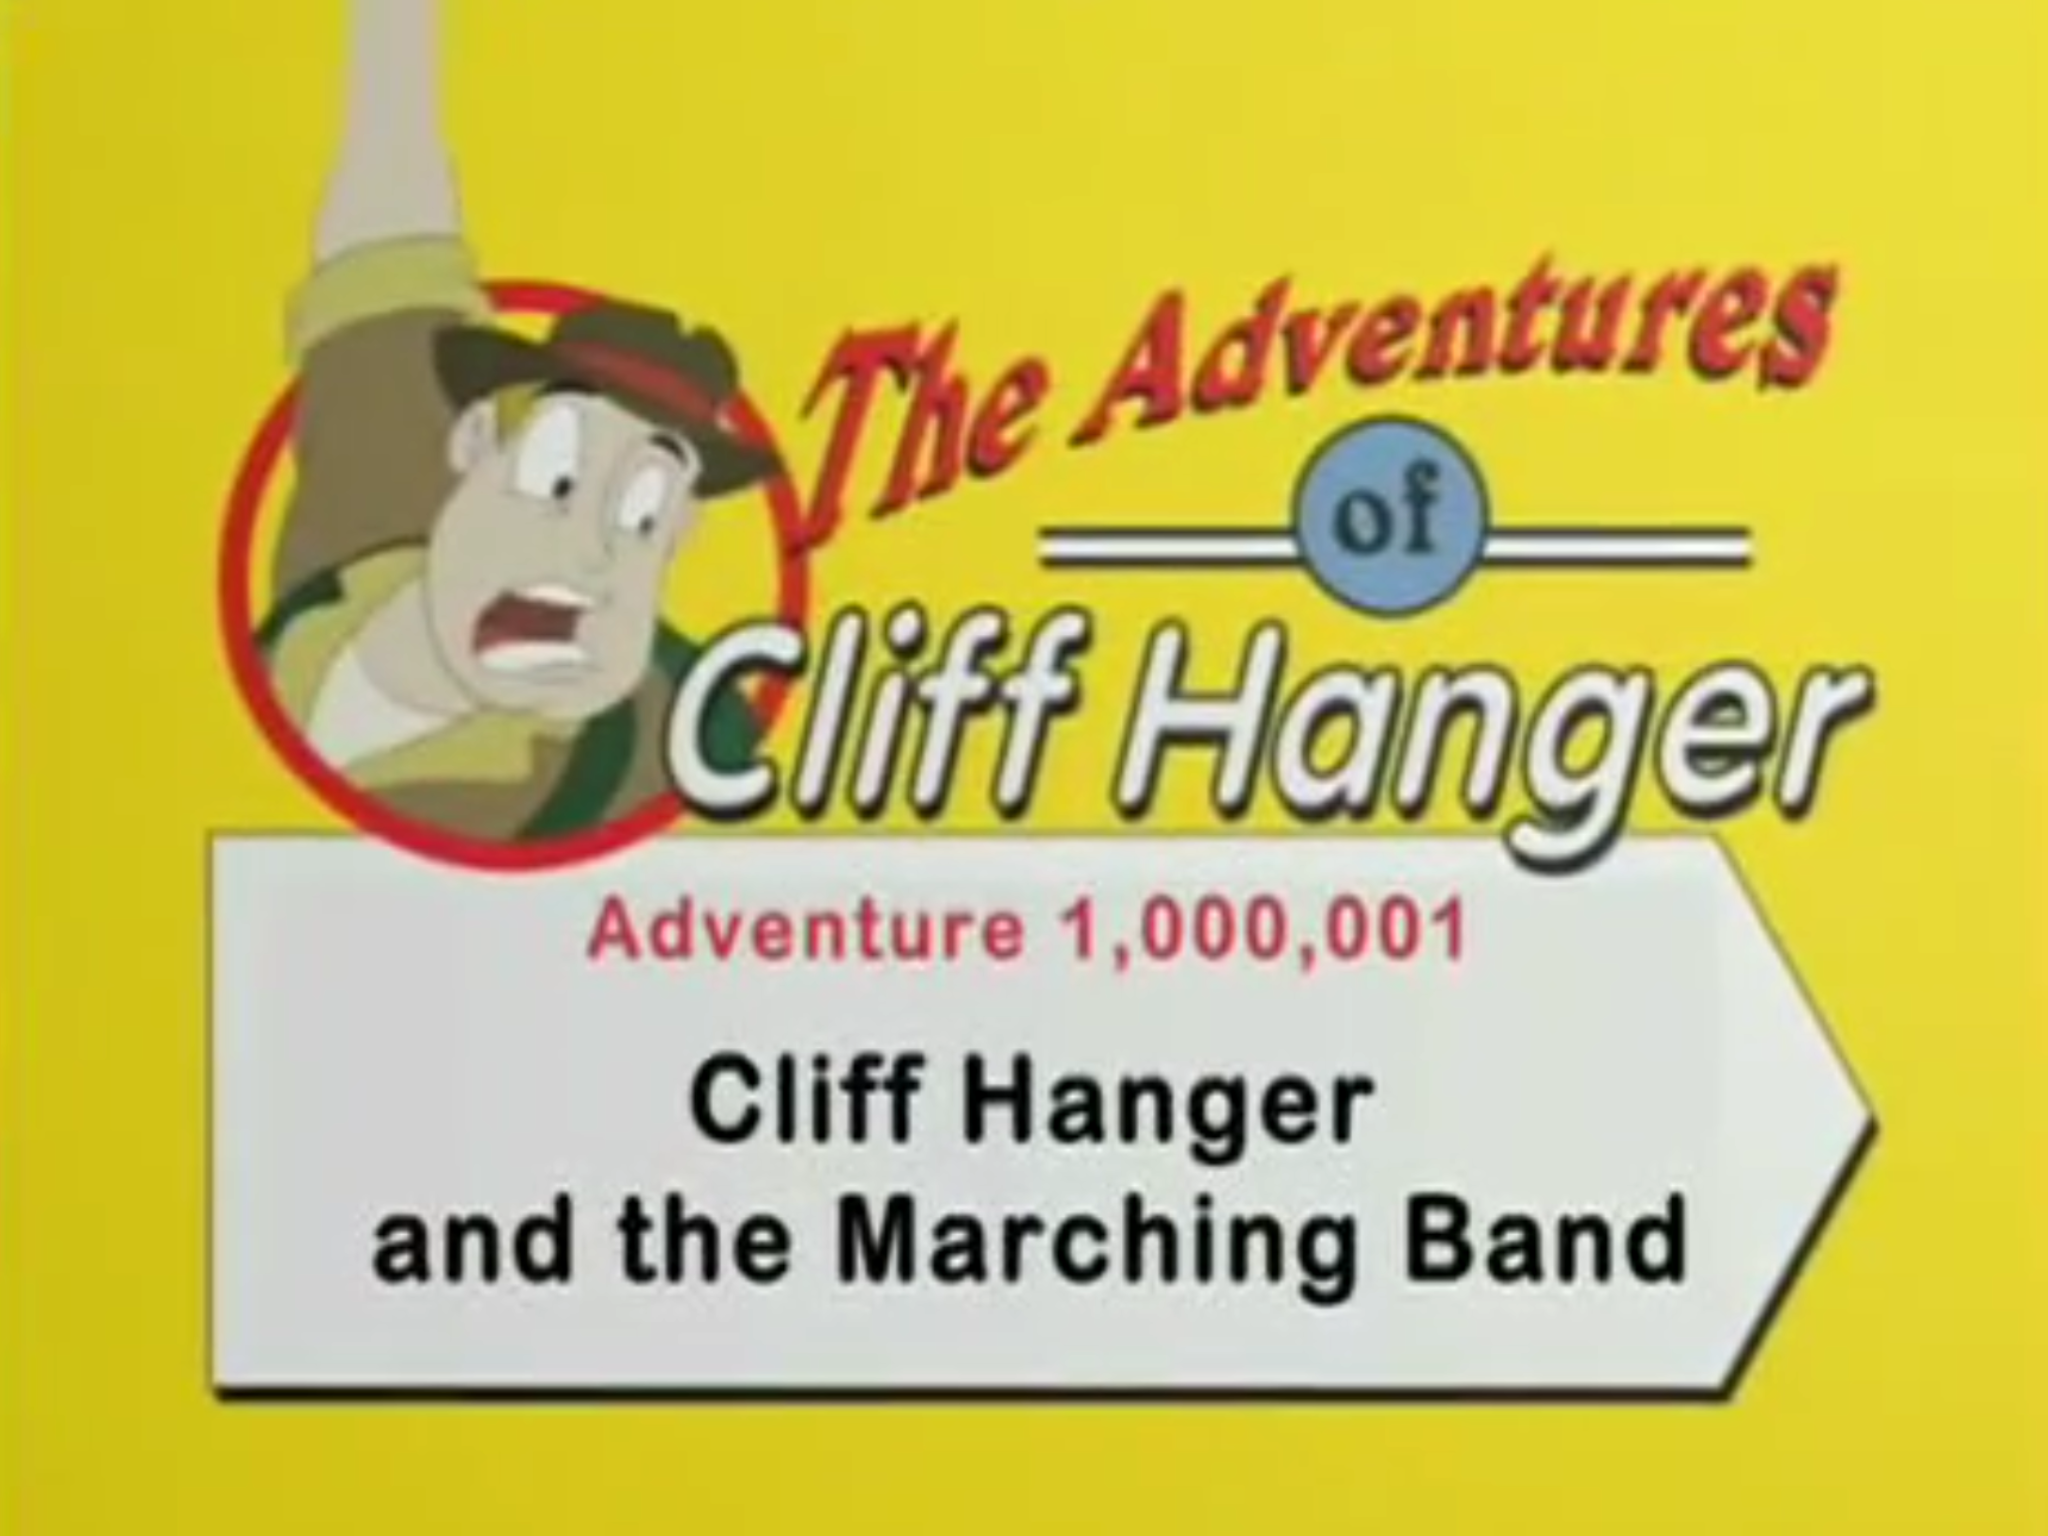 Cliff Hanger and the Marching Band